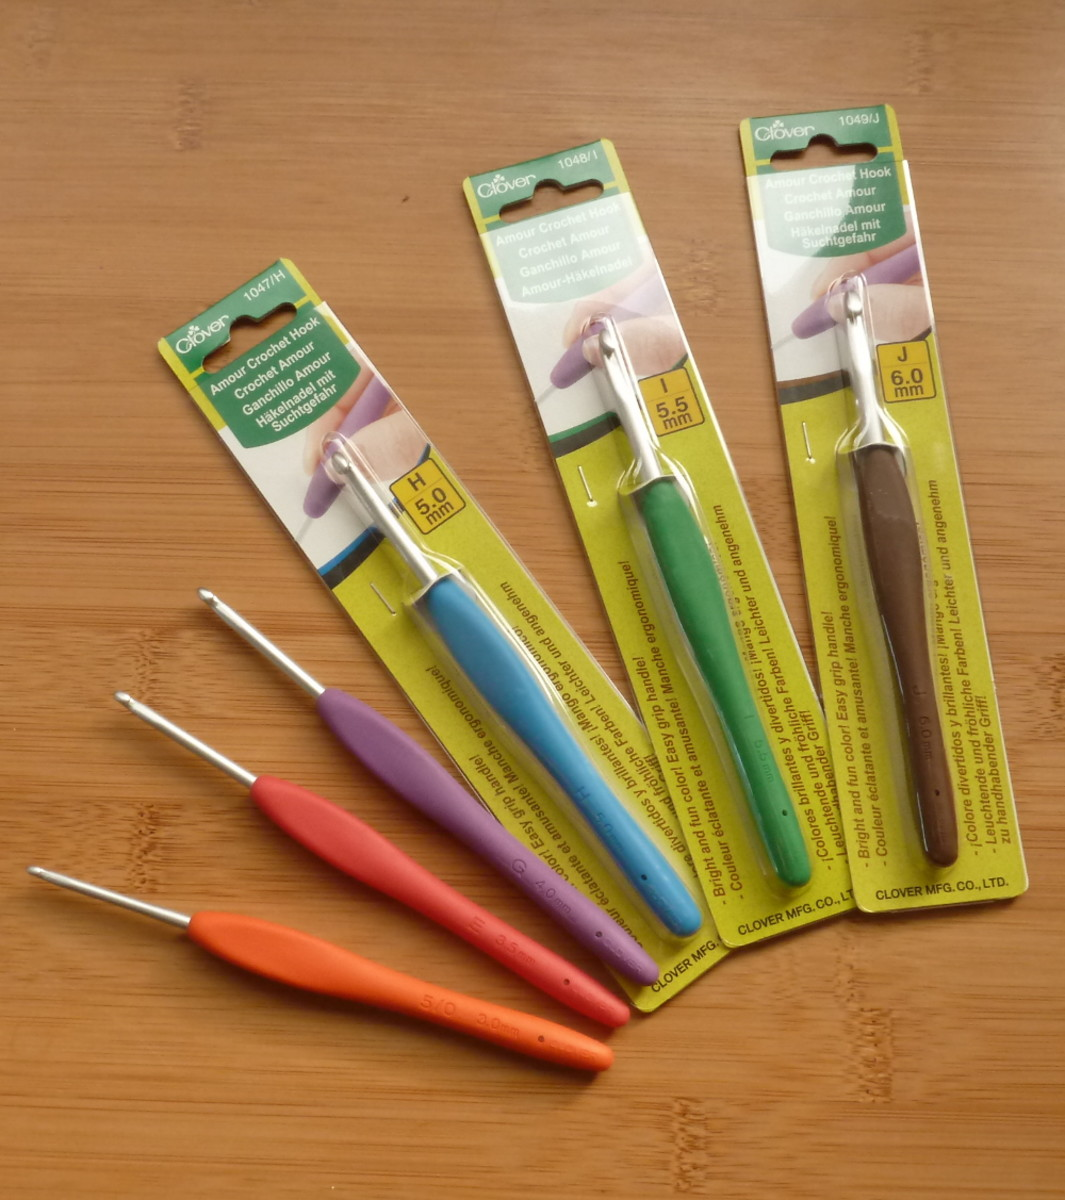 A set of clover amour crochet hooks makes a wonderful gift for someone who is new to crochet